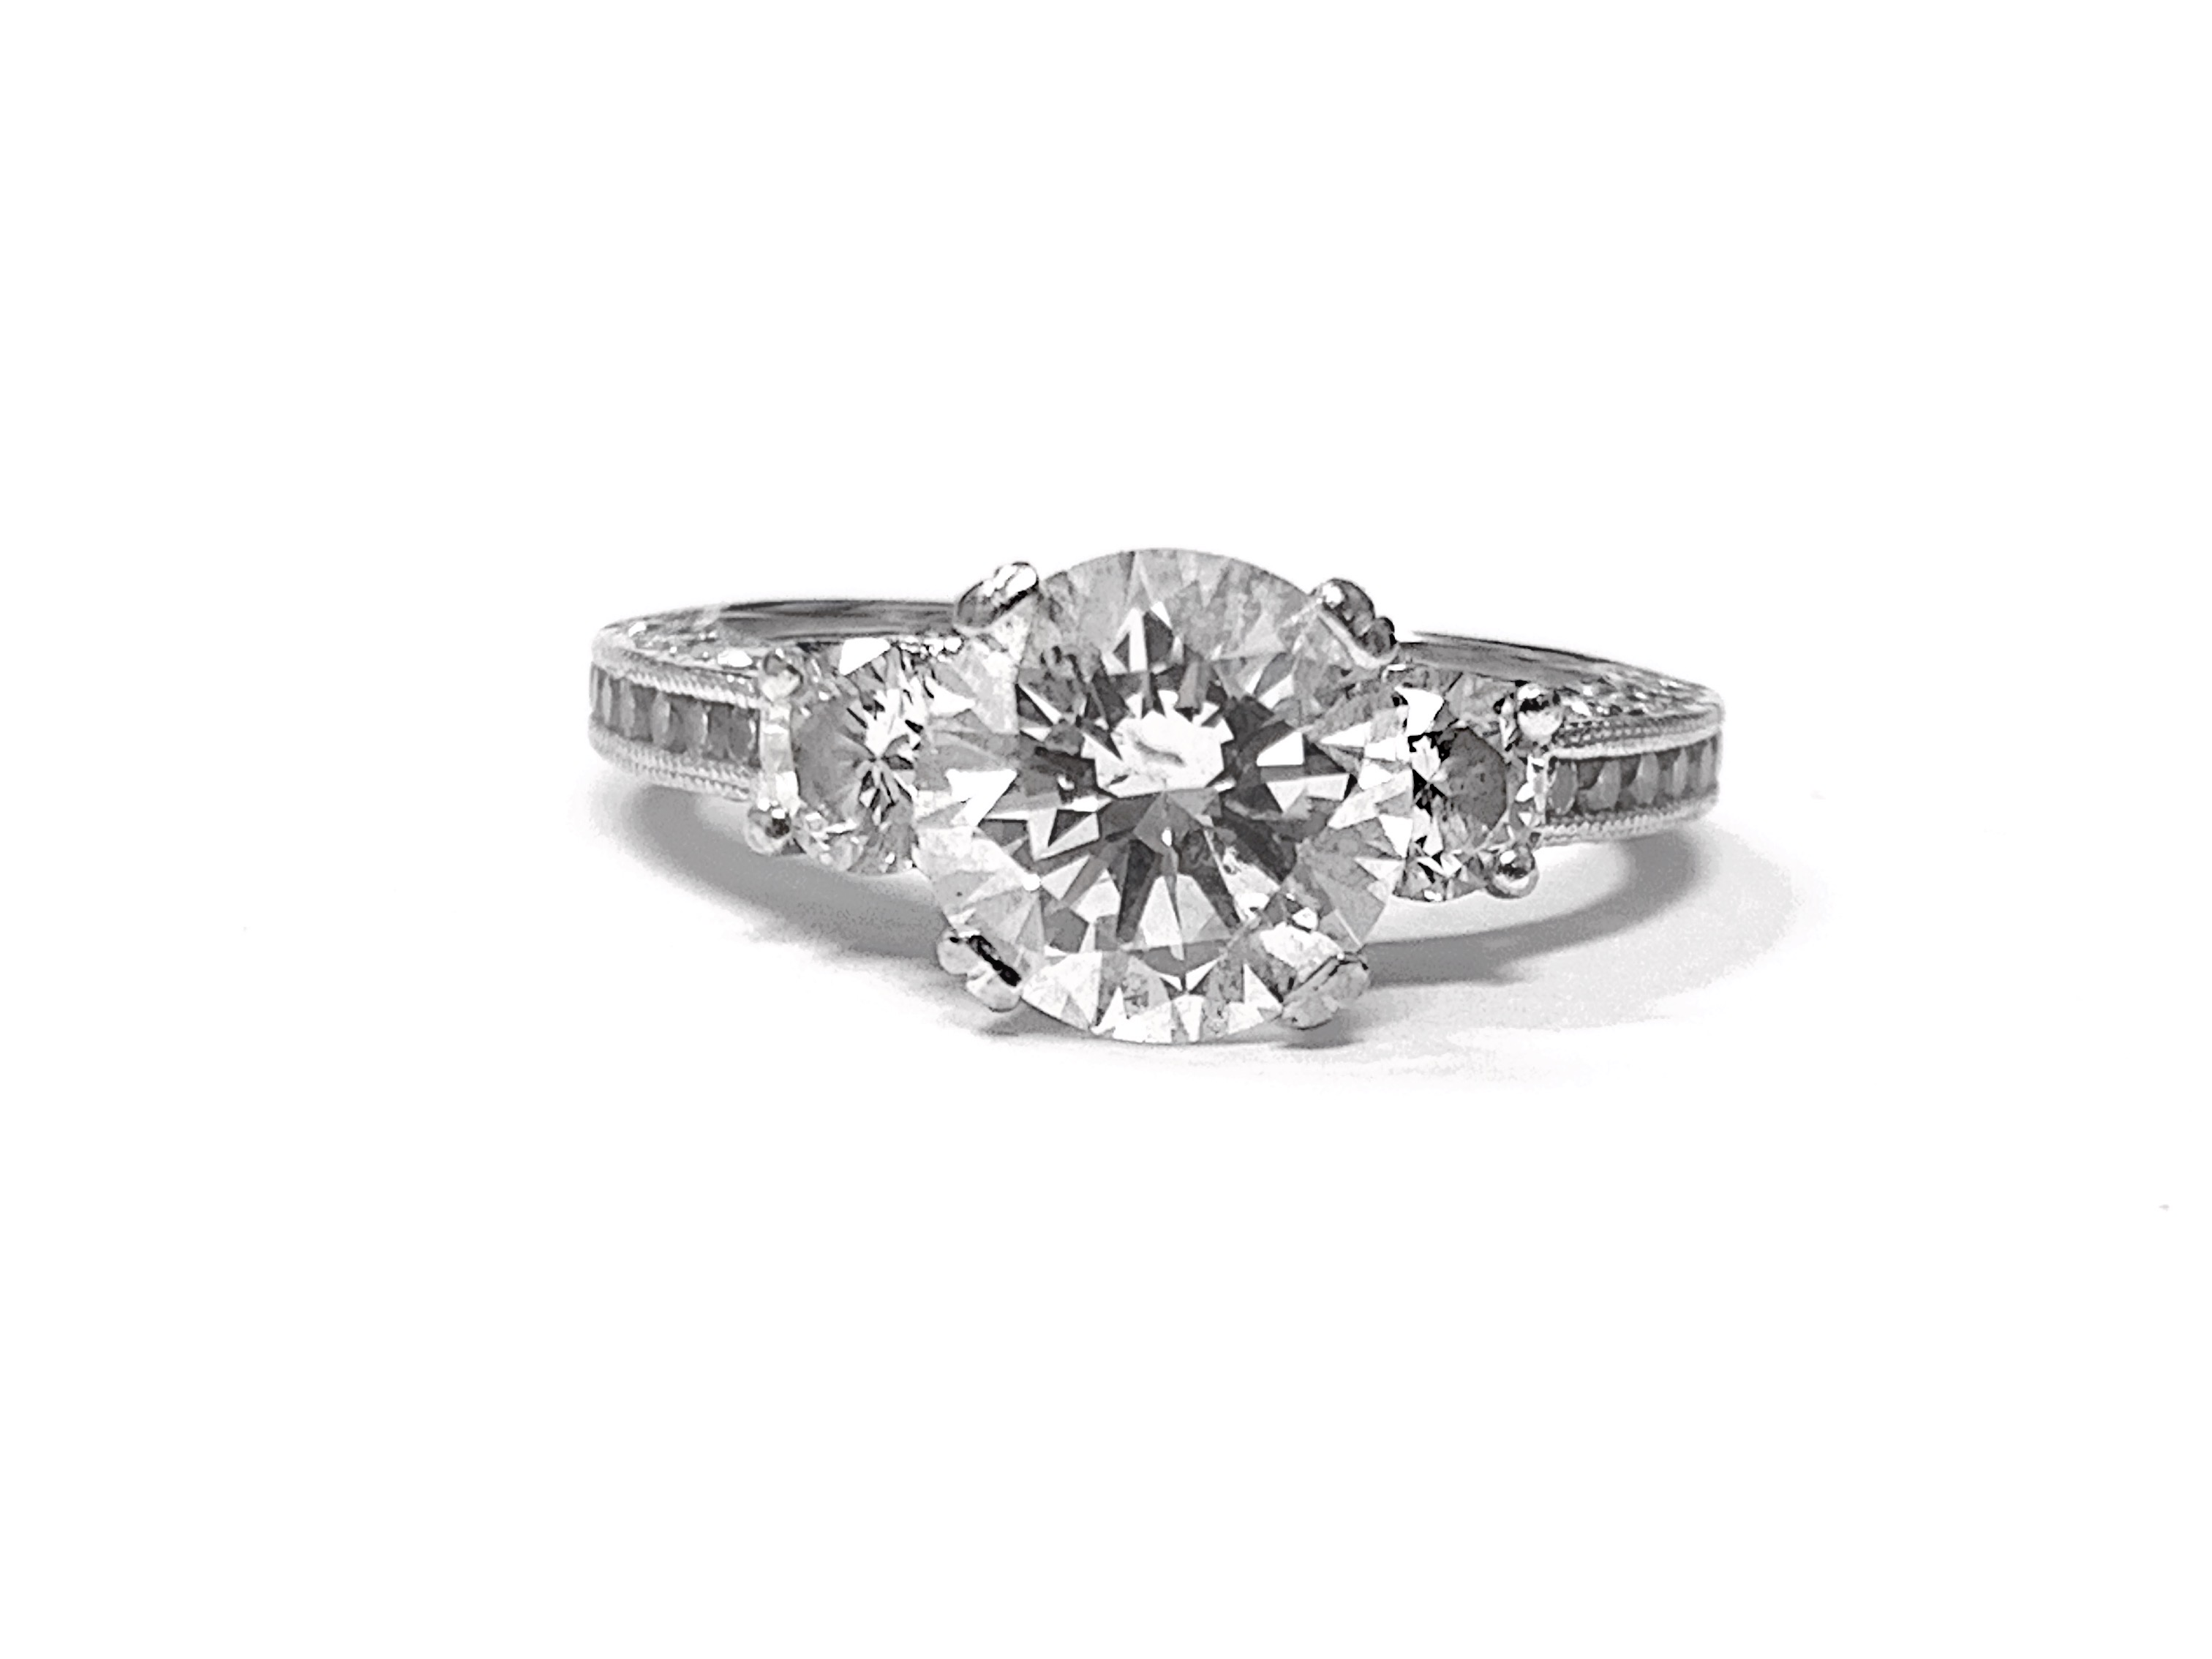 TACORI 1.52ct Round Brilliant